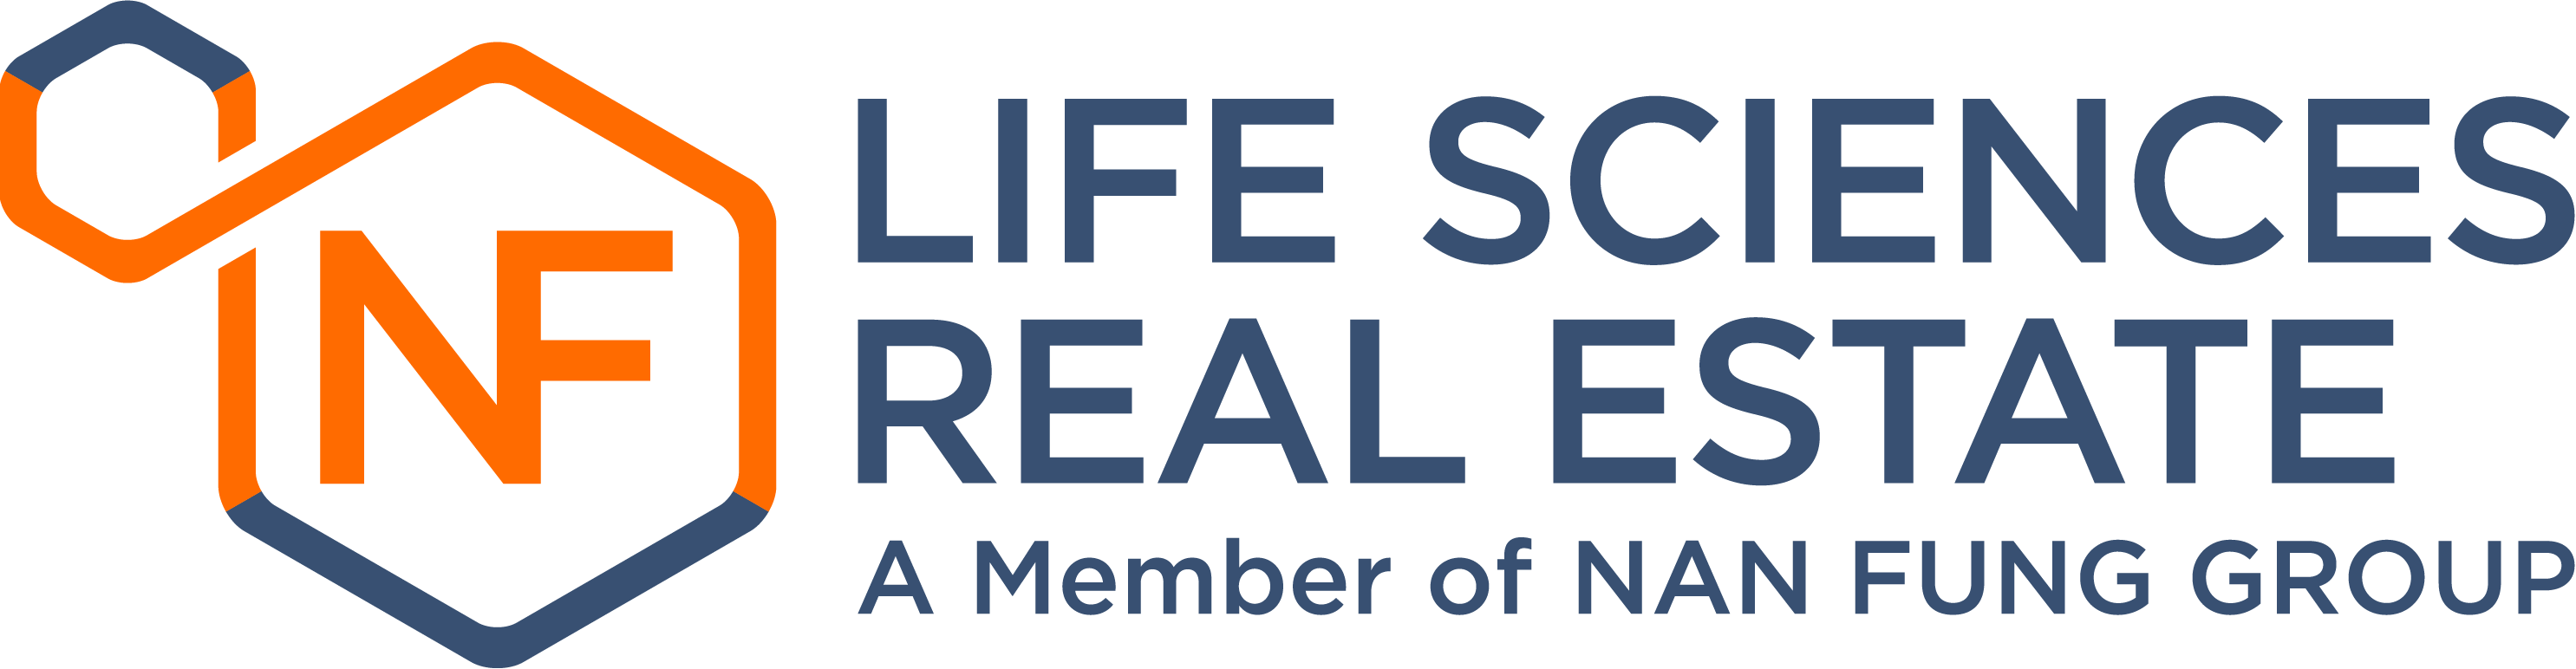 Nan Fung Life Sciences Real Estate